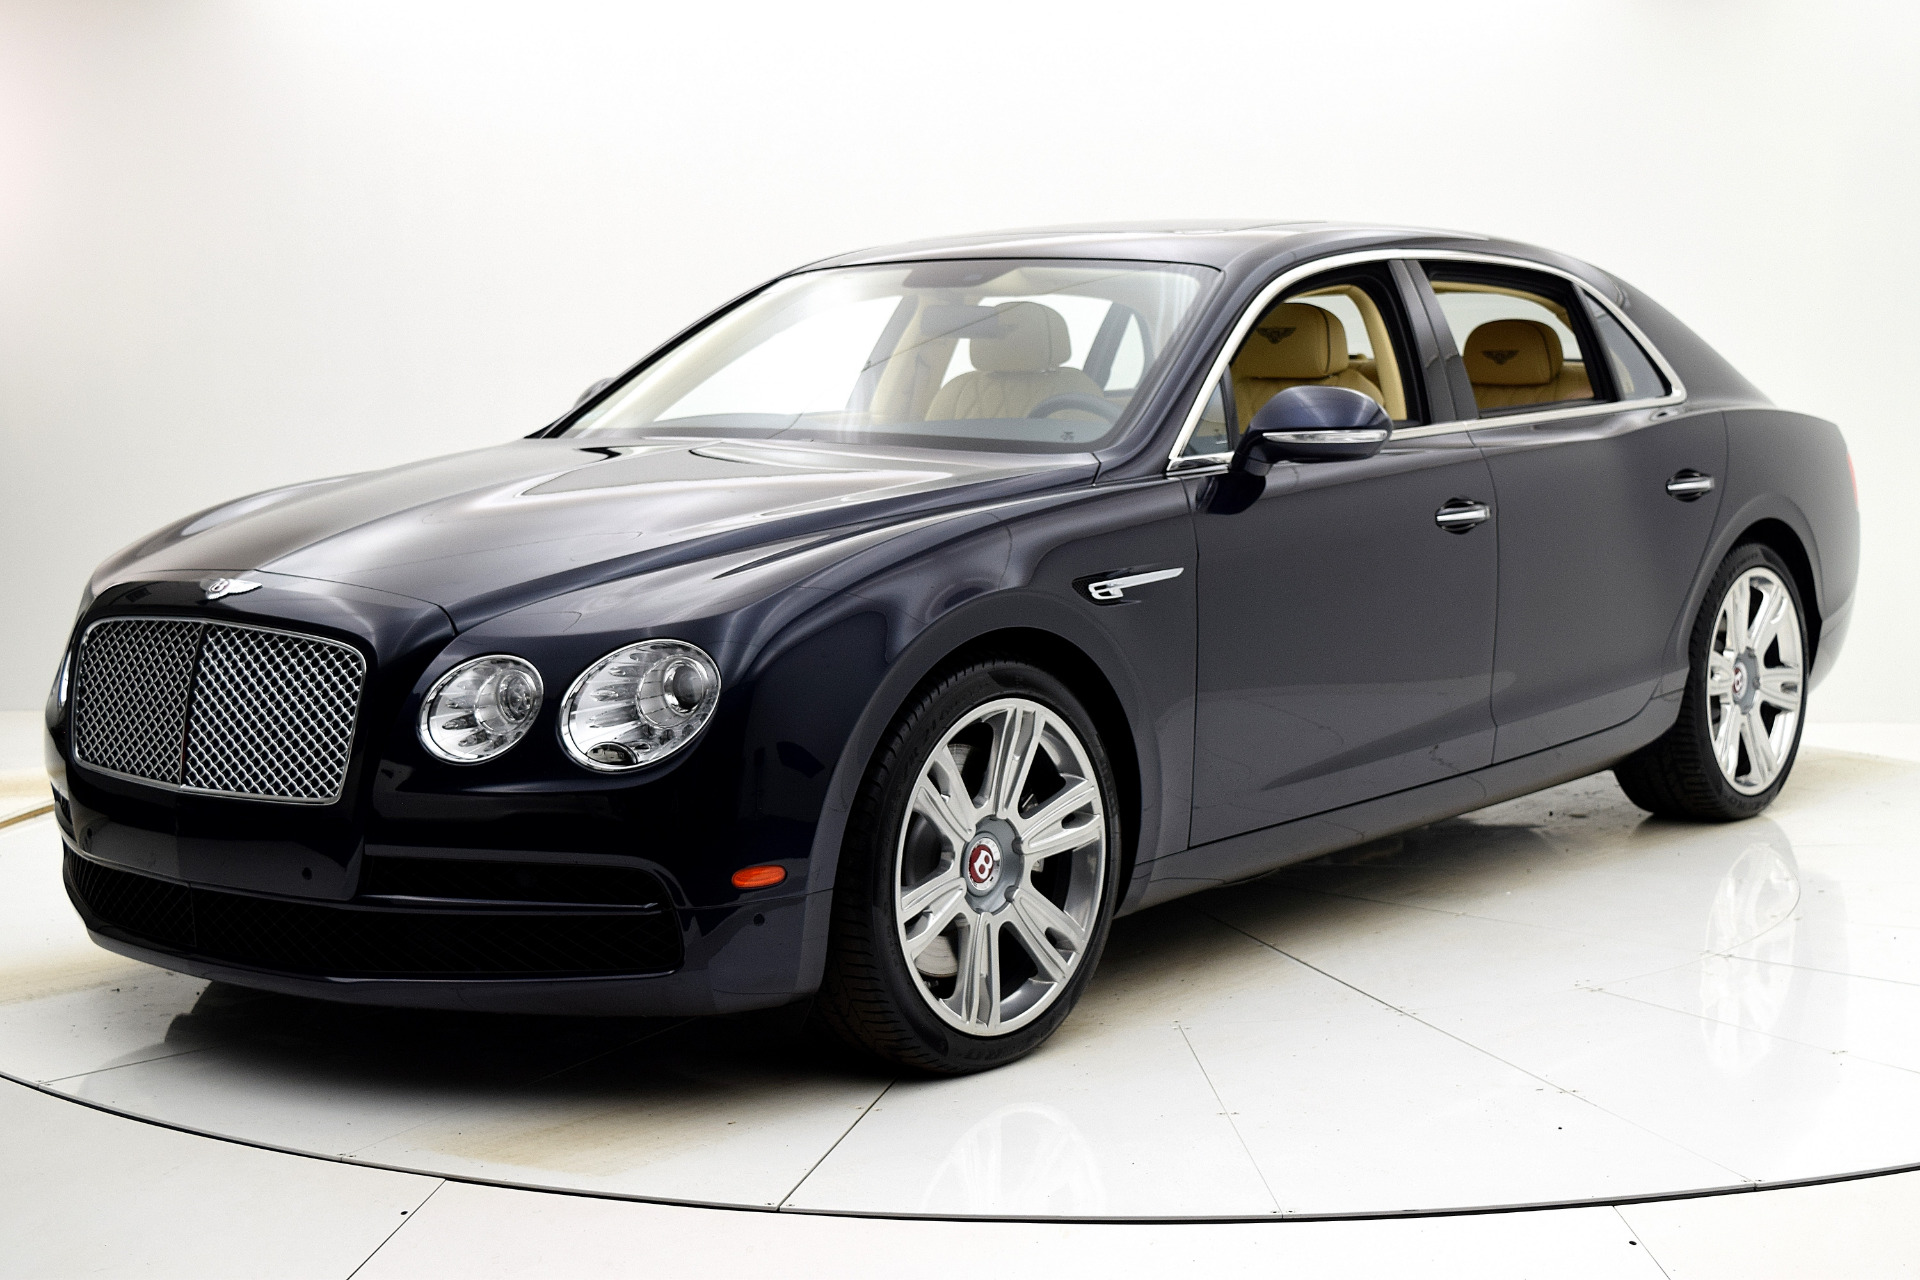 Used 2015 Bentley Flying Spur V8 for sale Sold at F.C. Kerbeck Aston Martin in Palmyra NJ 08065 2